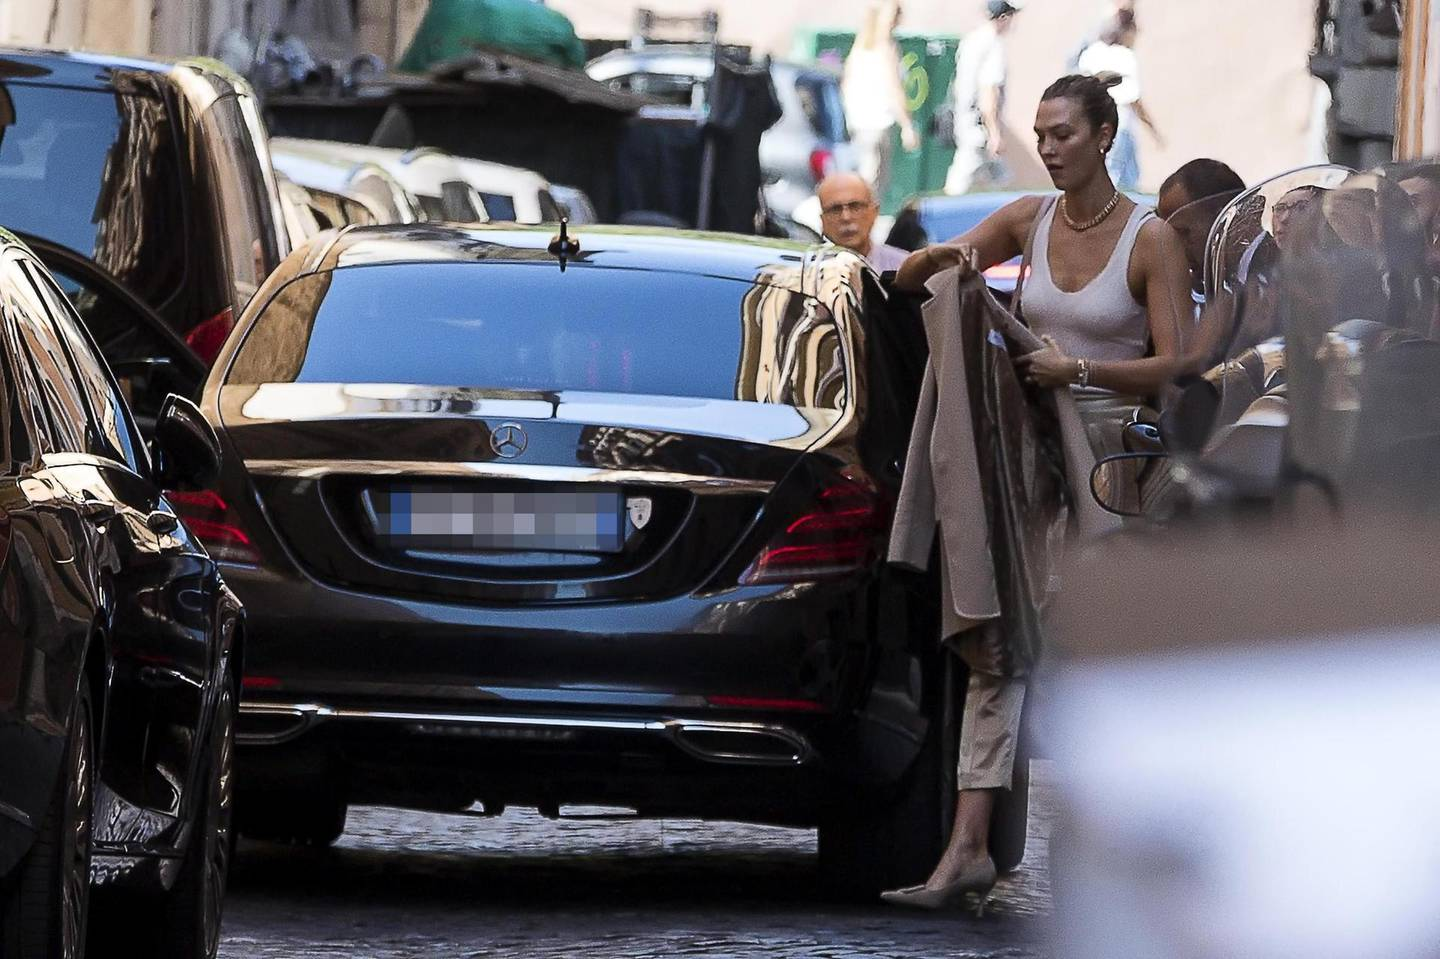 epa07857238 US model Karlie Kloss arrives at a hotel before attending the wedding ceremony of fashion designer Misha Nonoo and businessman Michael Hess at Villa Aurelia in Rome, Italy, 20 September 2019.  EPA/ANGELO CARCONI